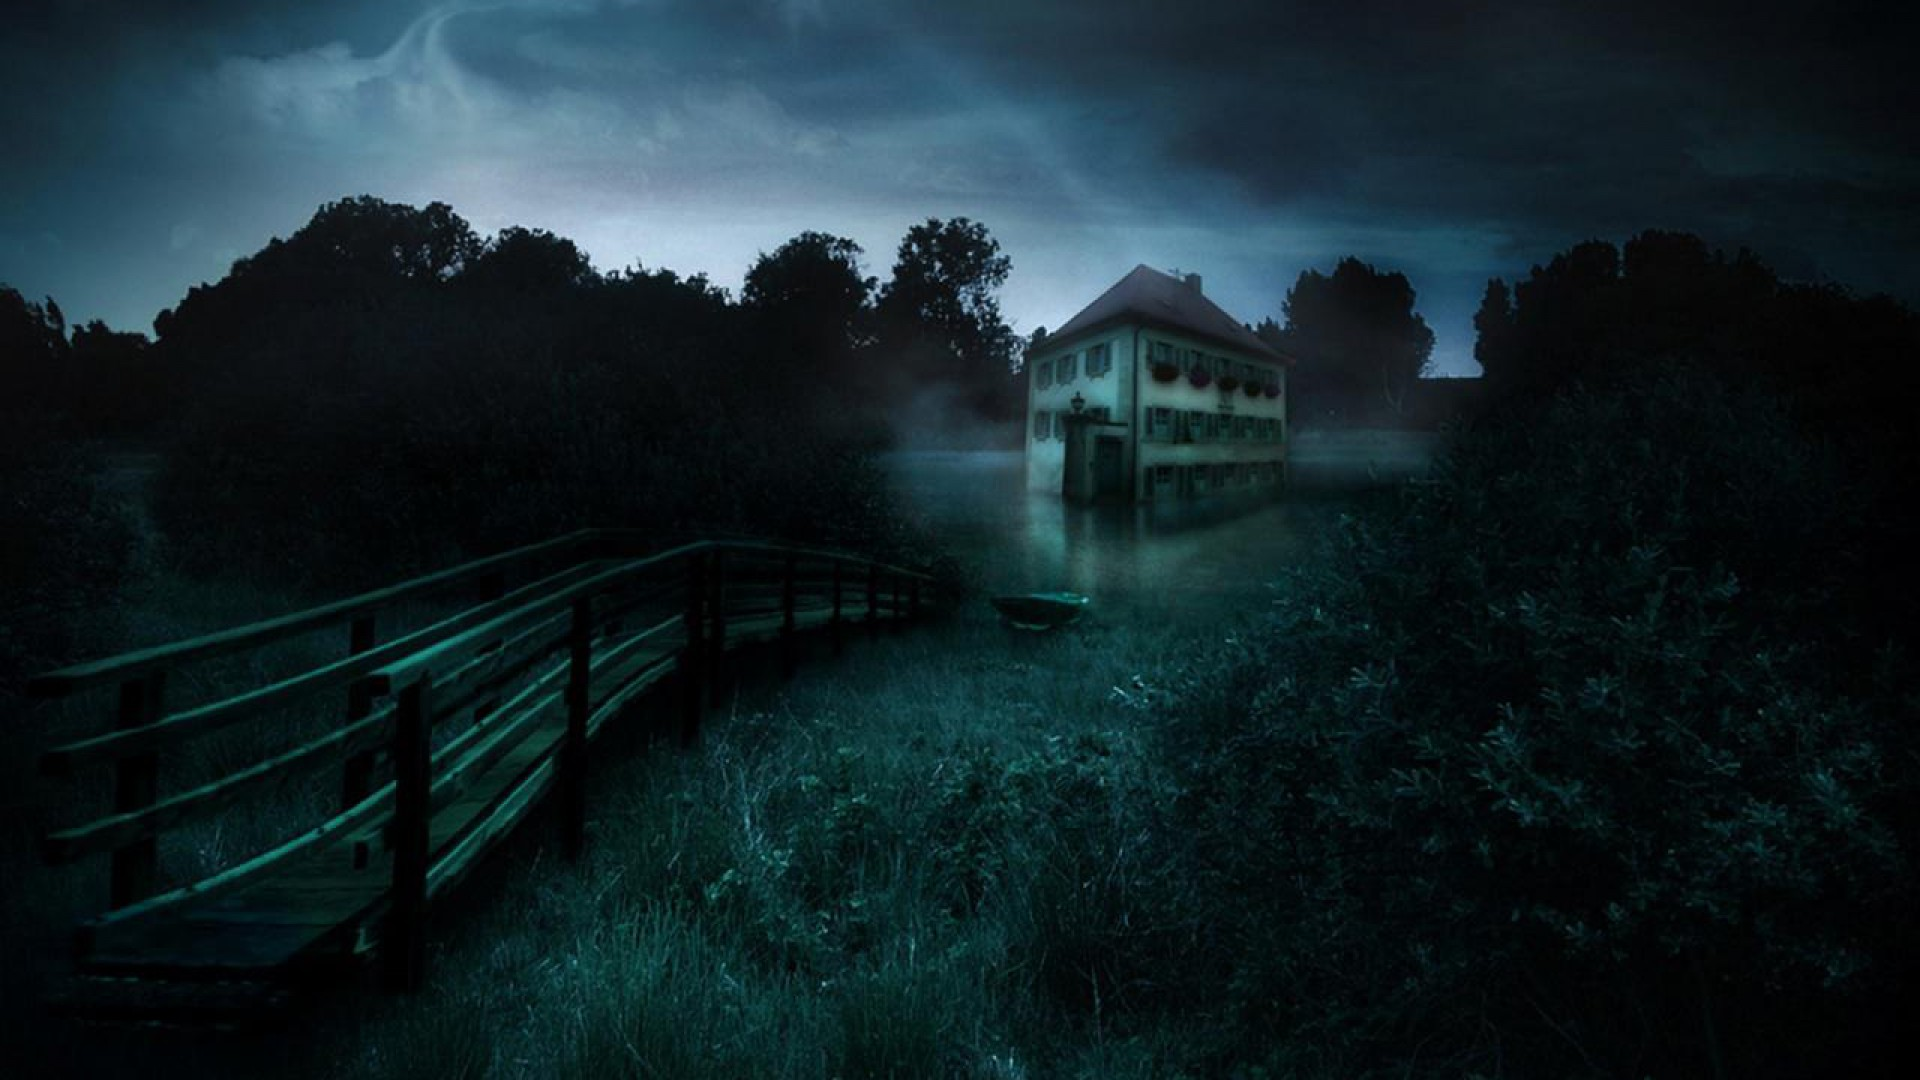 Scary Wallpapers Home Creepy Garden 152